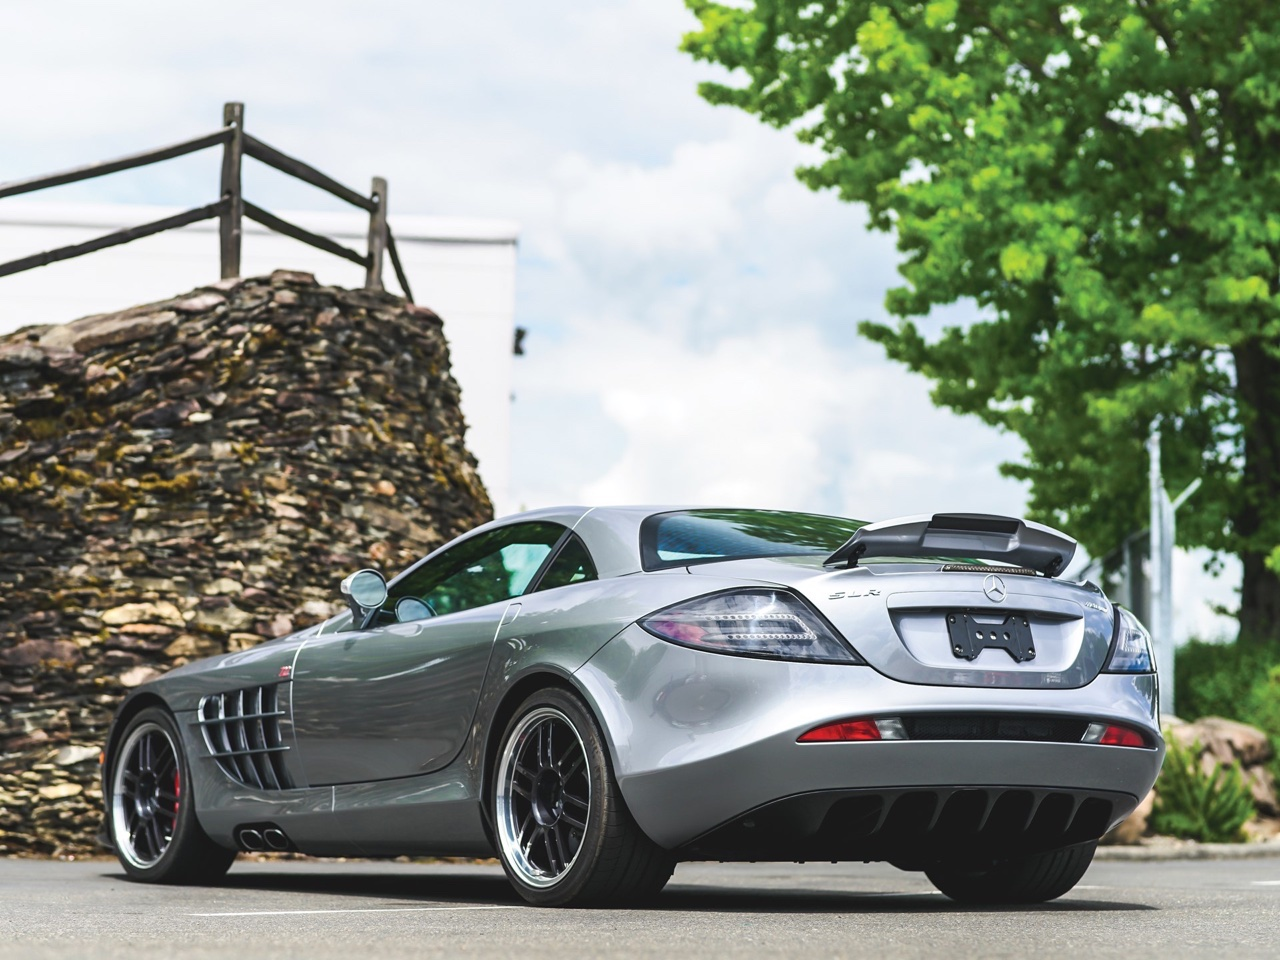 Mercedes SLR McLaren Stirling Moss - Bouquet final ! 15